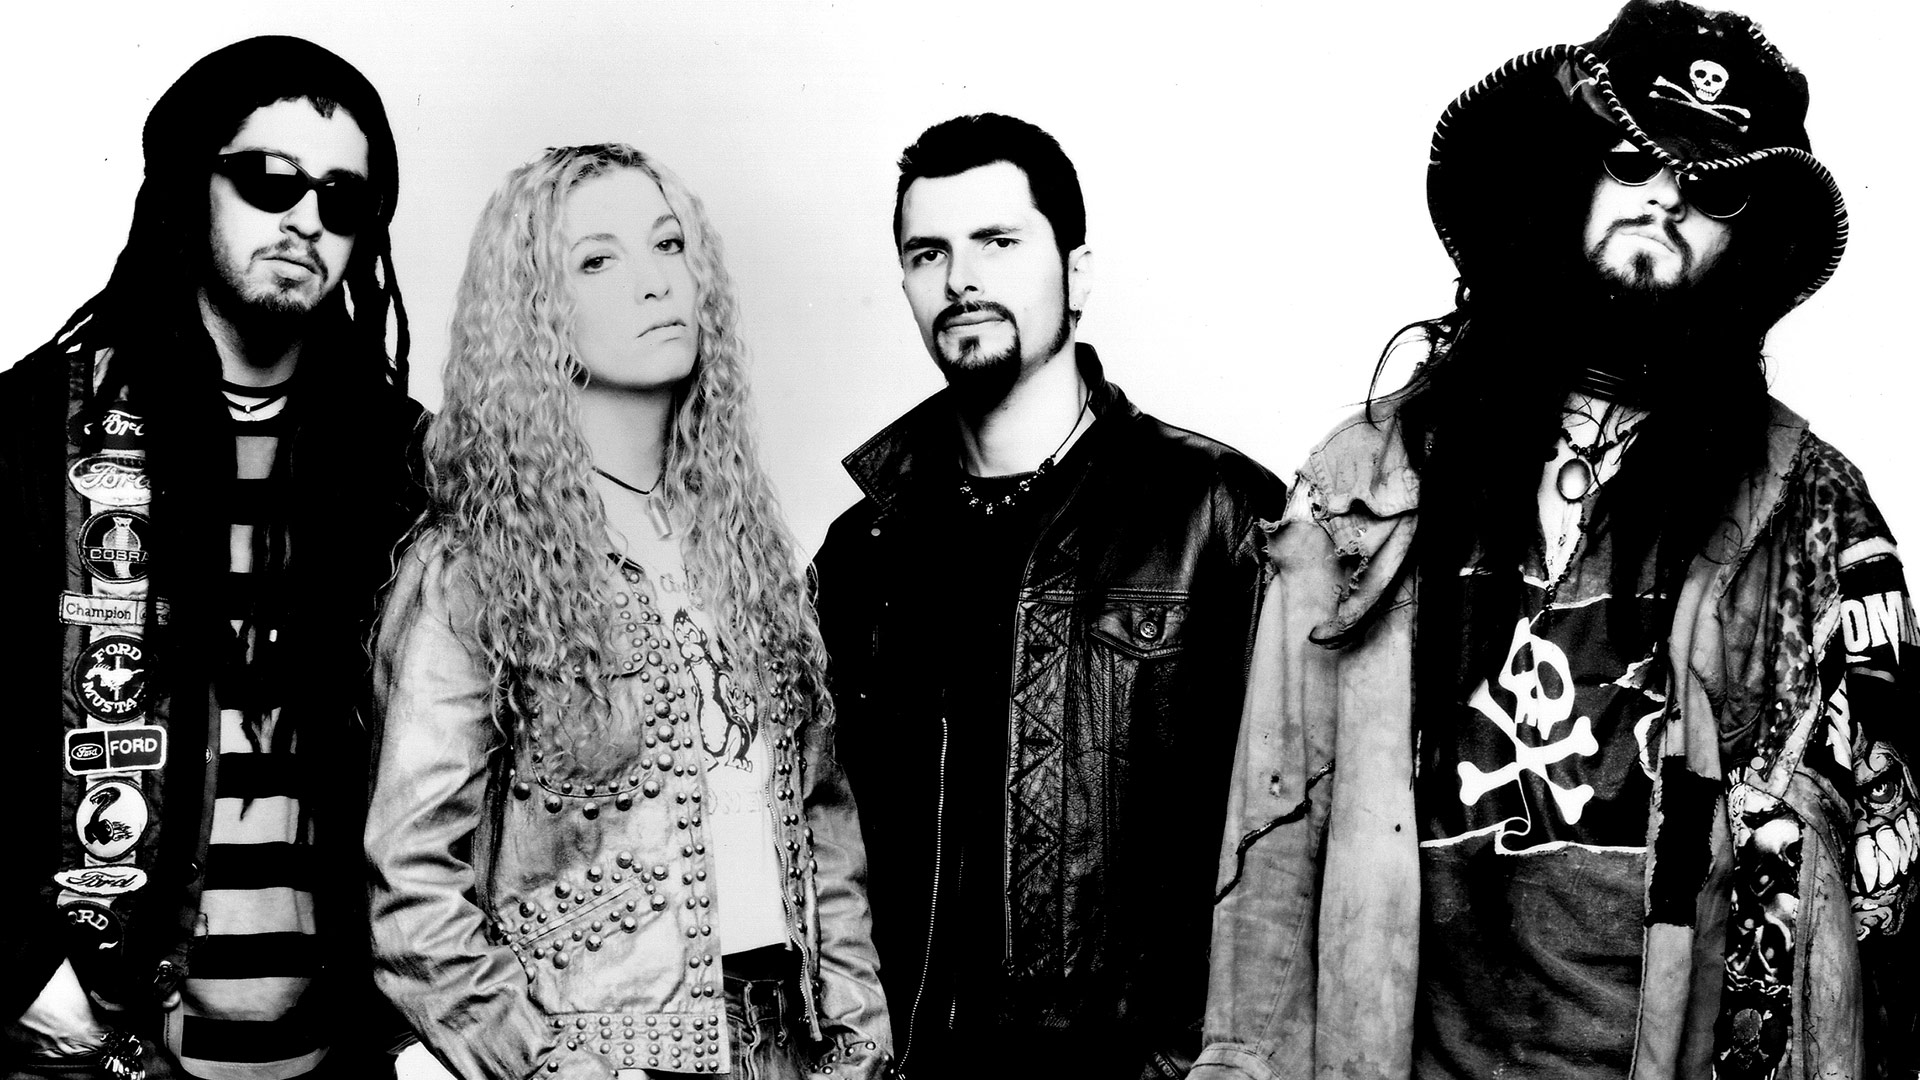 A picture of the band White Zombie circa 1995